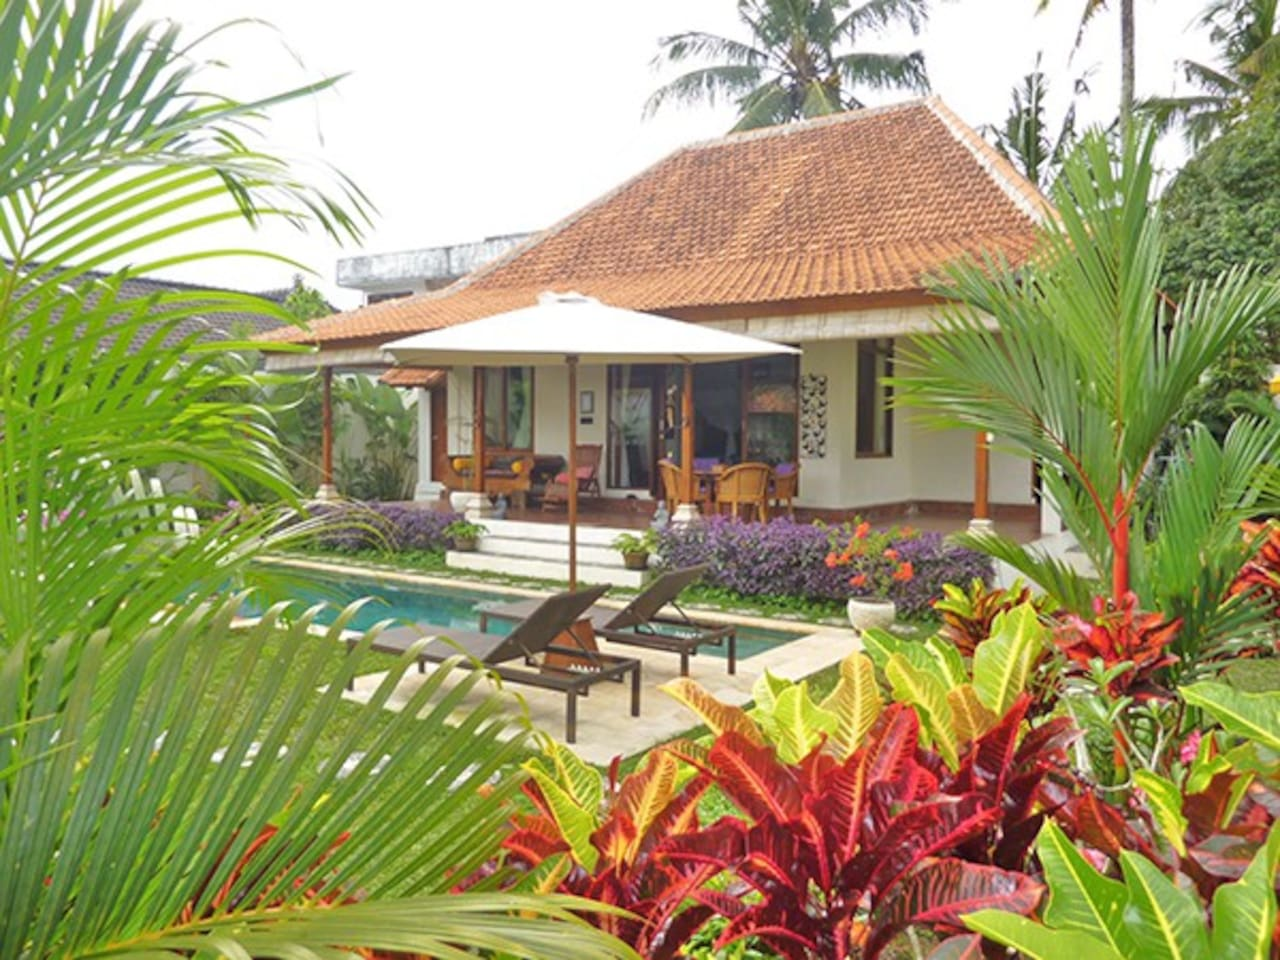 Villa Damai has it all - Gardens, pool, spacious living and a view.